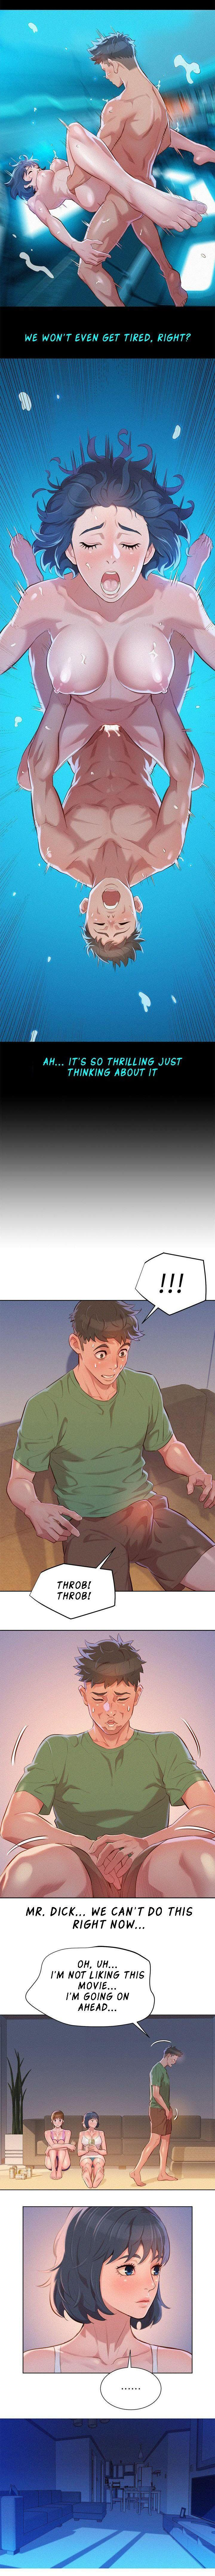 What do you Take me For? Ch.70/? 376